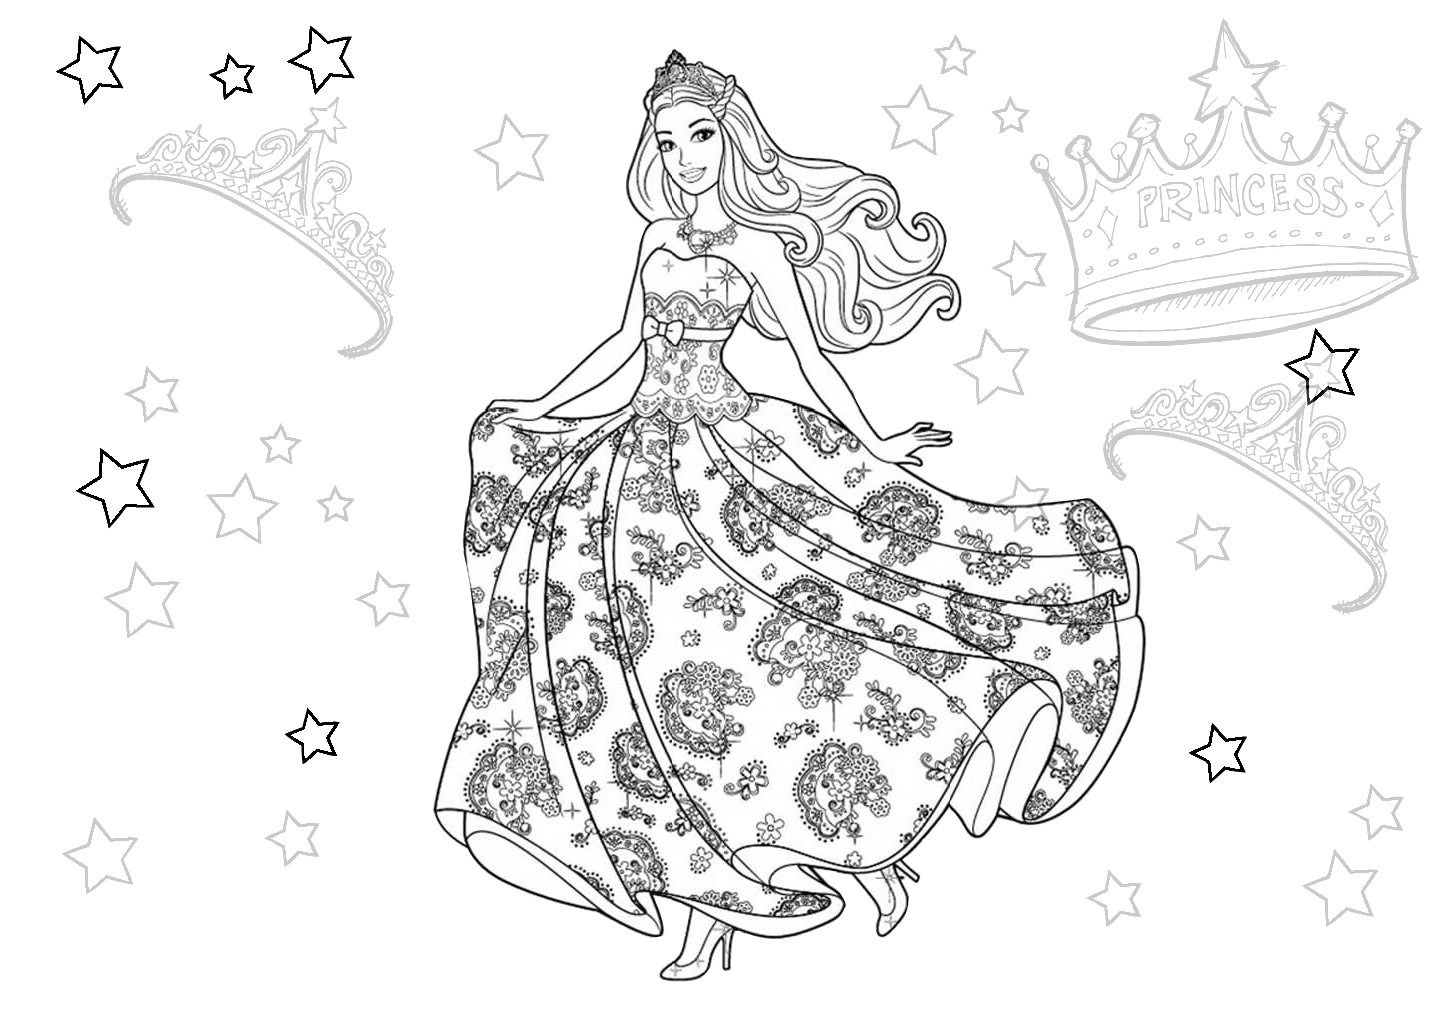 Barbie Coloring Pages Free Games Online For – leruy.club | 1025x1450